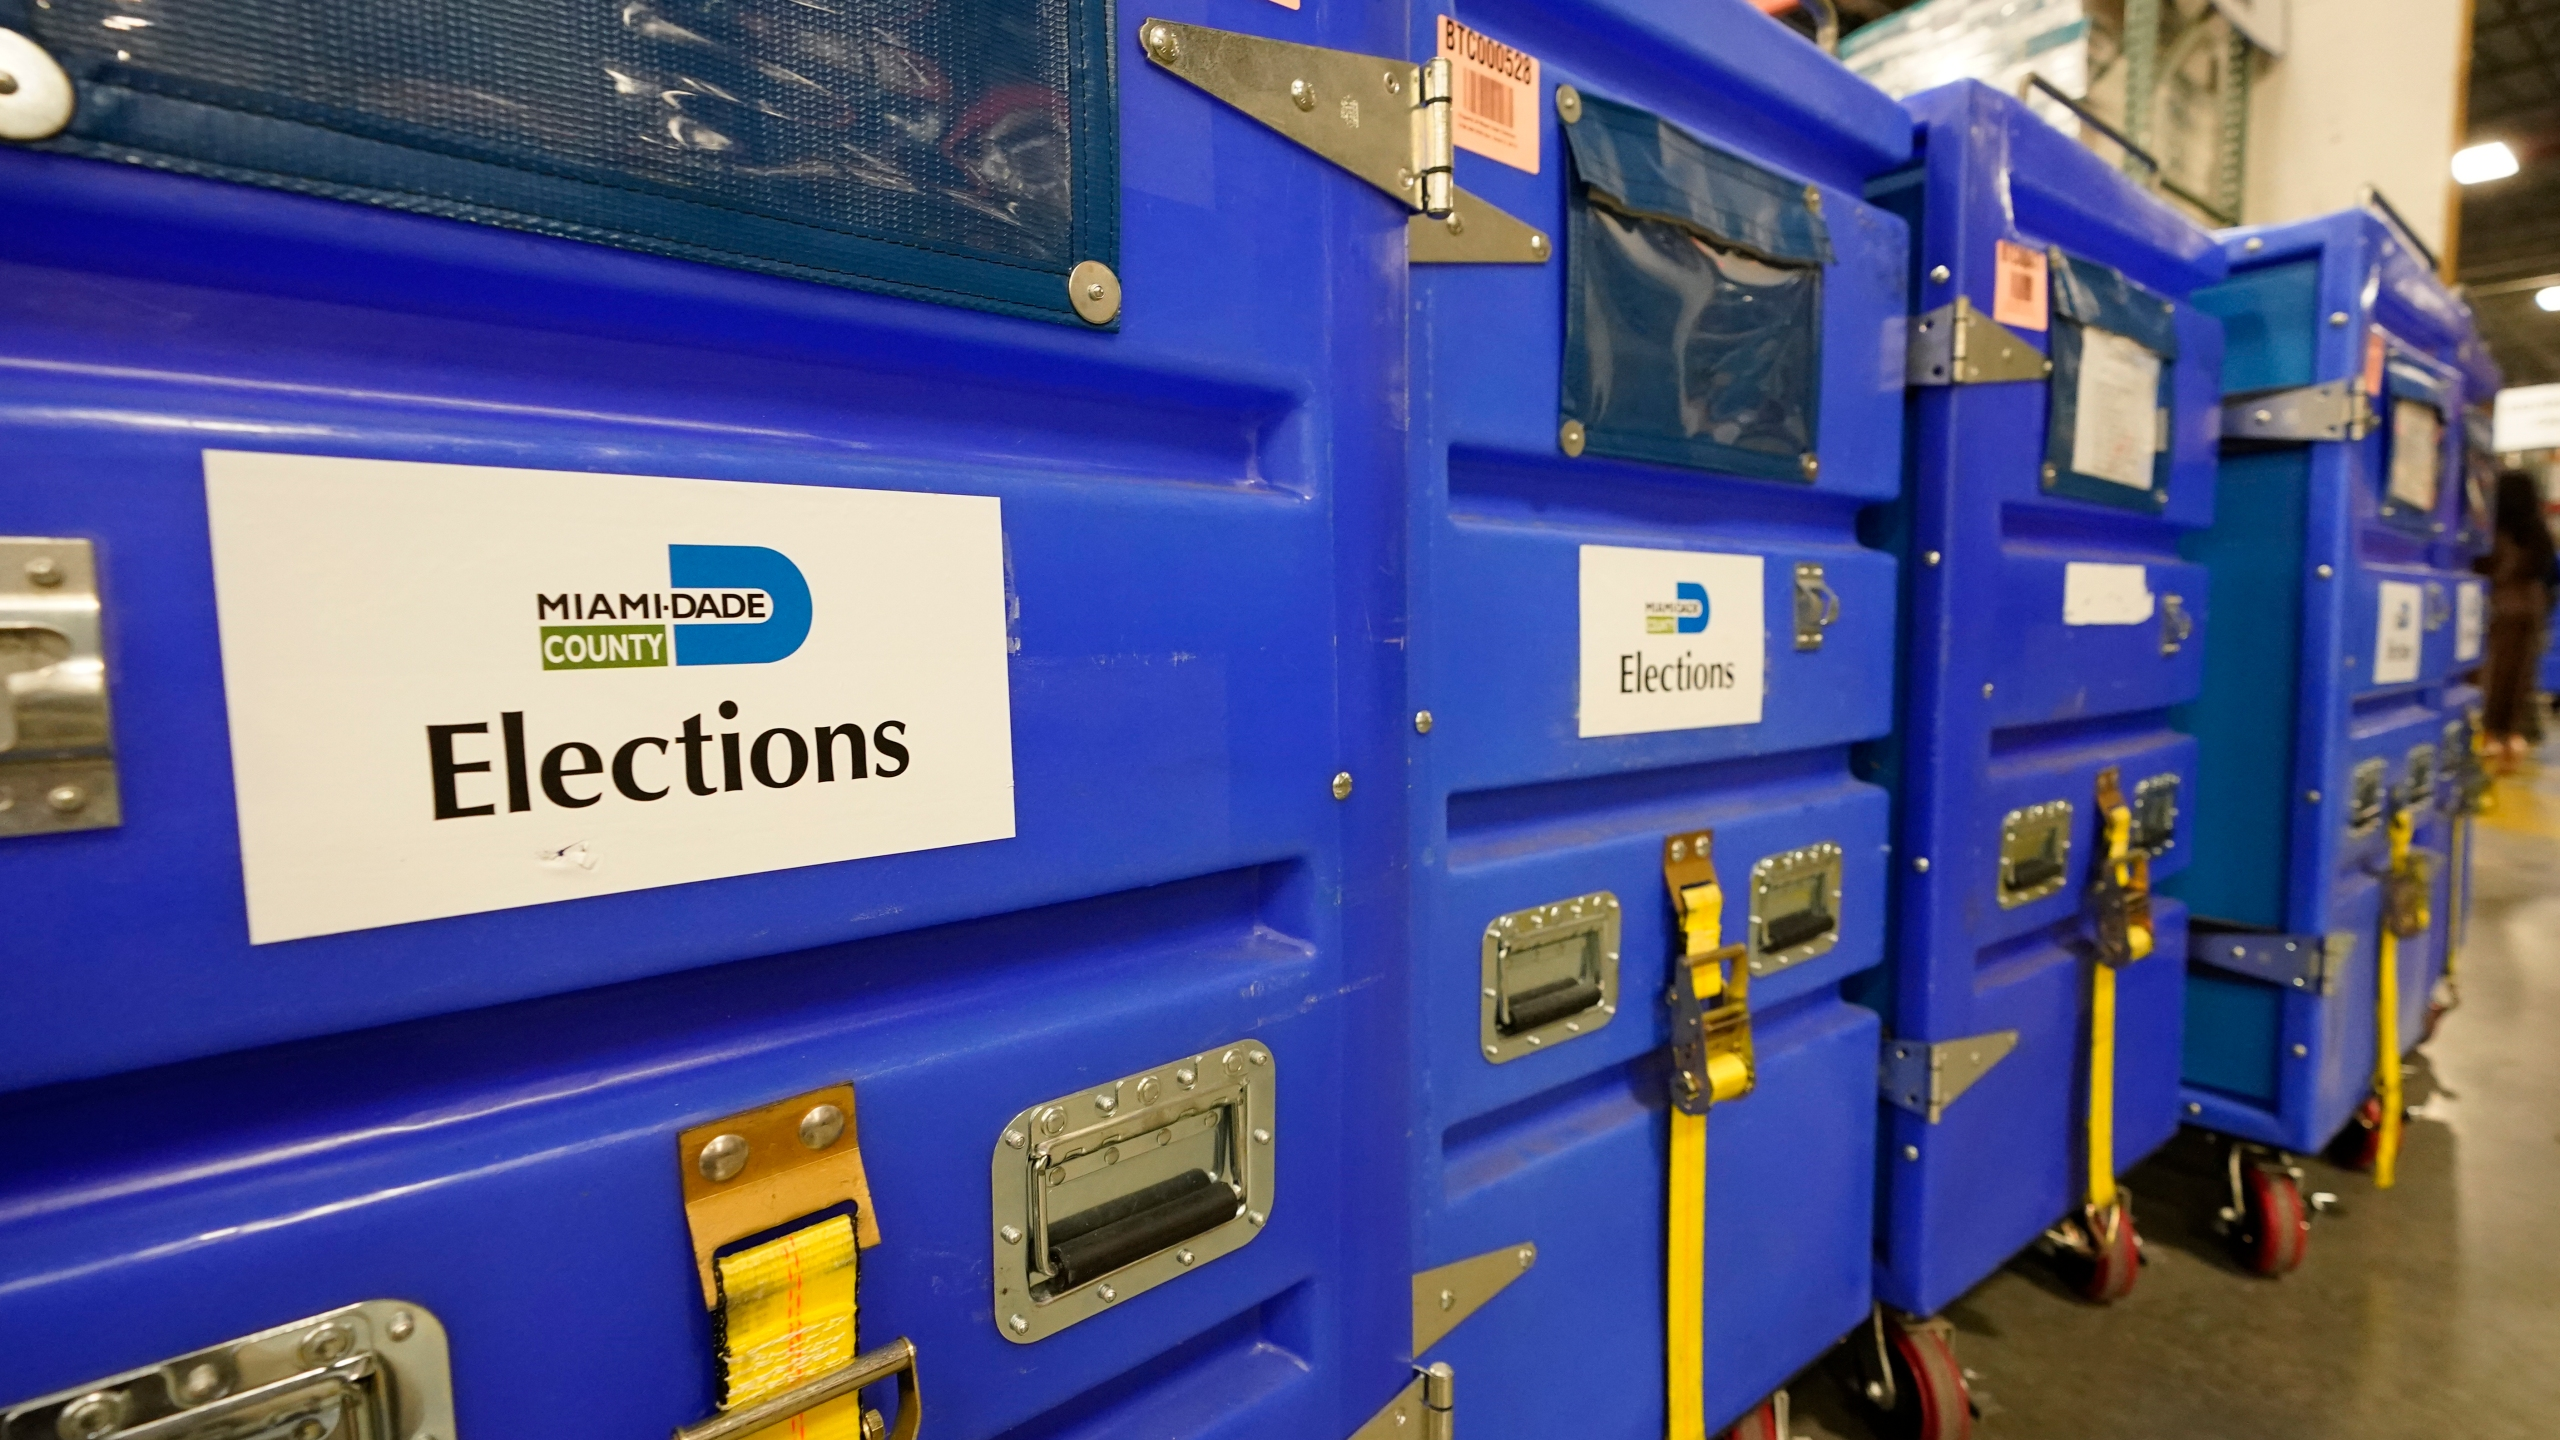 Crates loaded with election supplies are seen at the Miami-Dade County Elections Department, Thursday, Oct. 1, 2020, in Doral, Fla. (AP Photo/Wilfredo Lee)